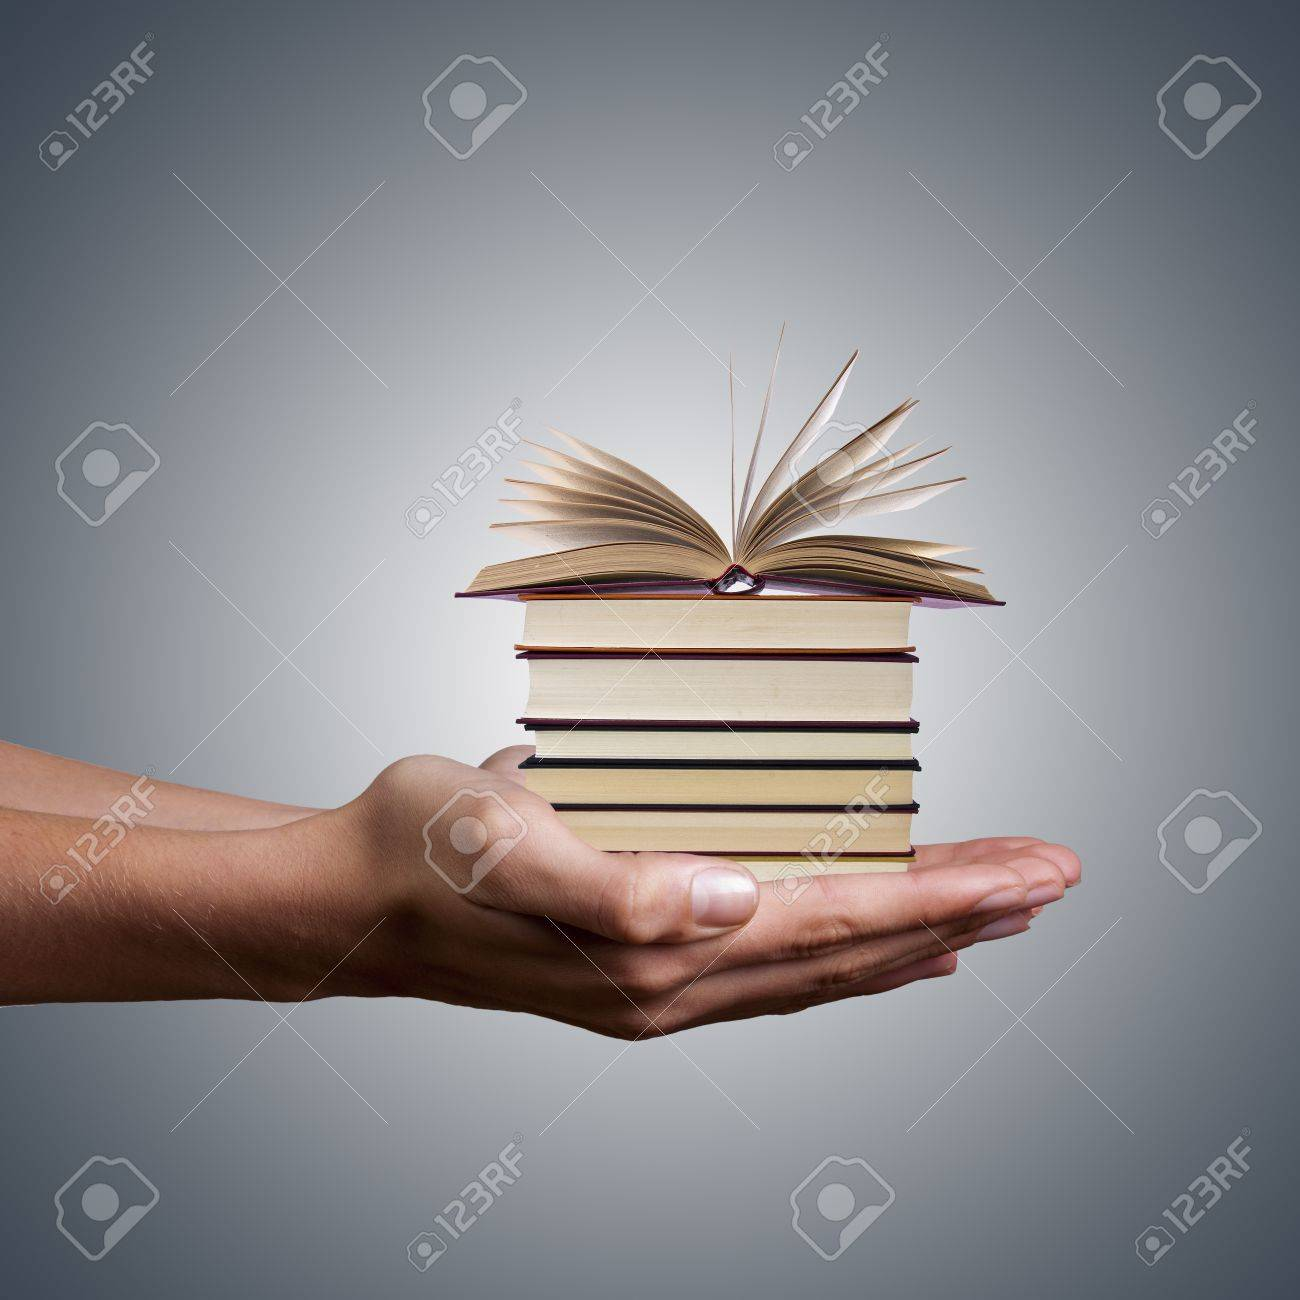 hands holding stacked books on white background - 18394457